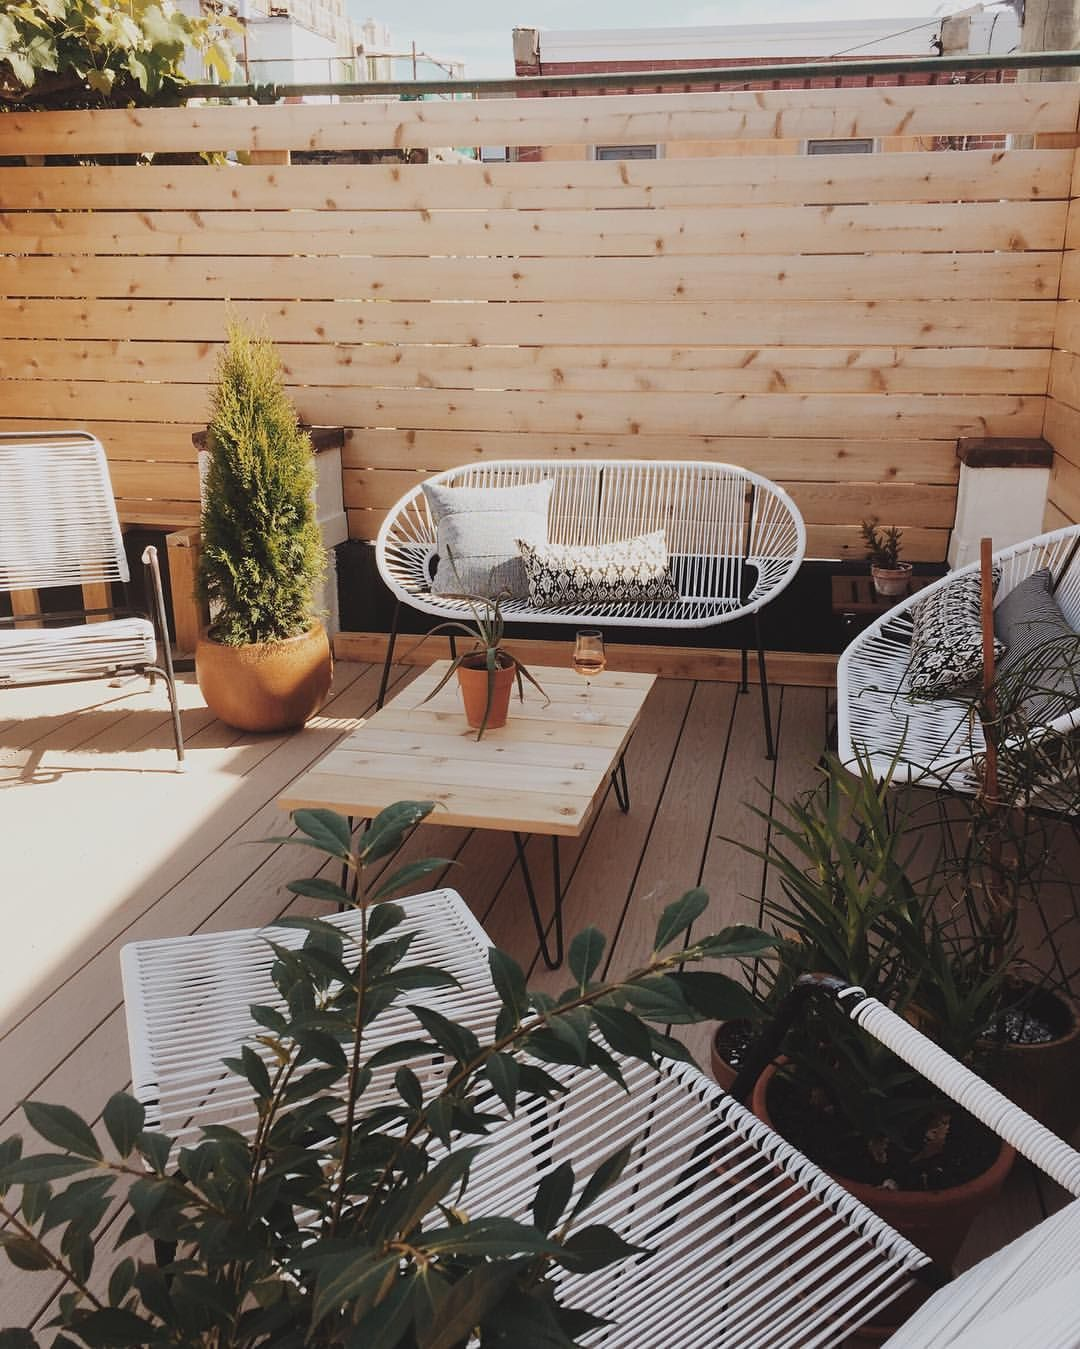 Pinterest mylittlejourney ☼ ☾♡ eclectic outdoor furniture white patio furniture metal